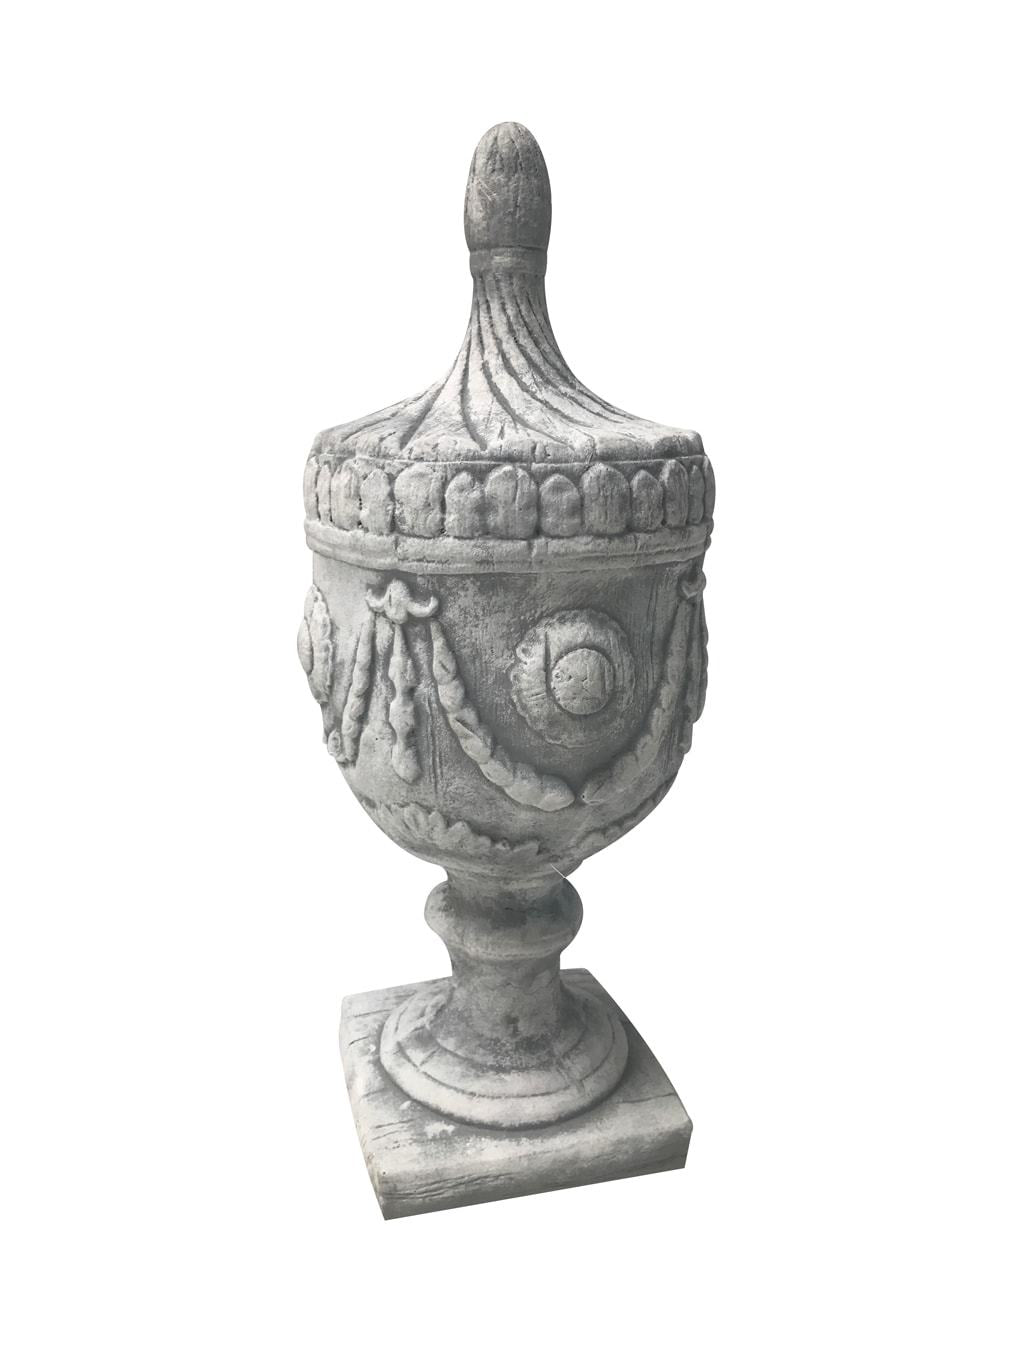 Urn Shaped Decorative Finial Garden Decoration from Antiqued White Stone